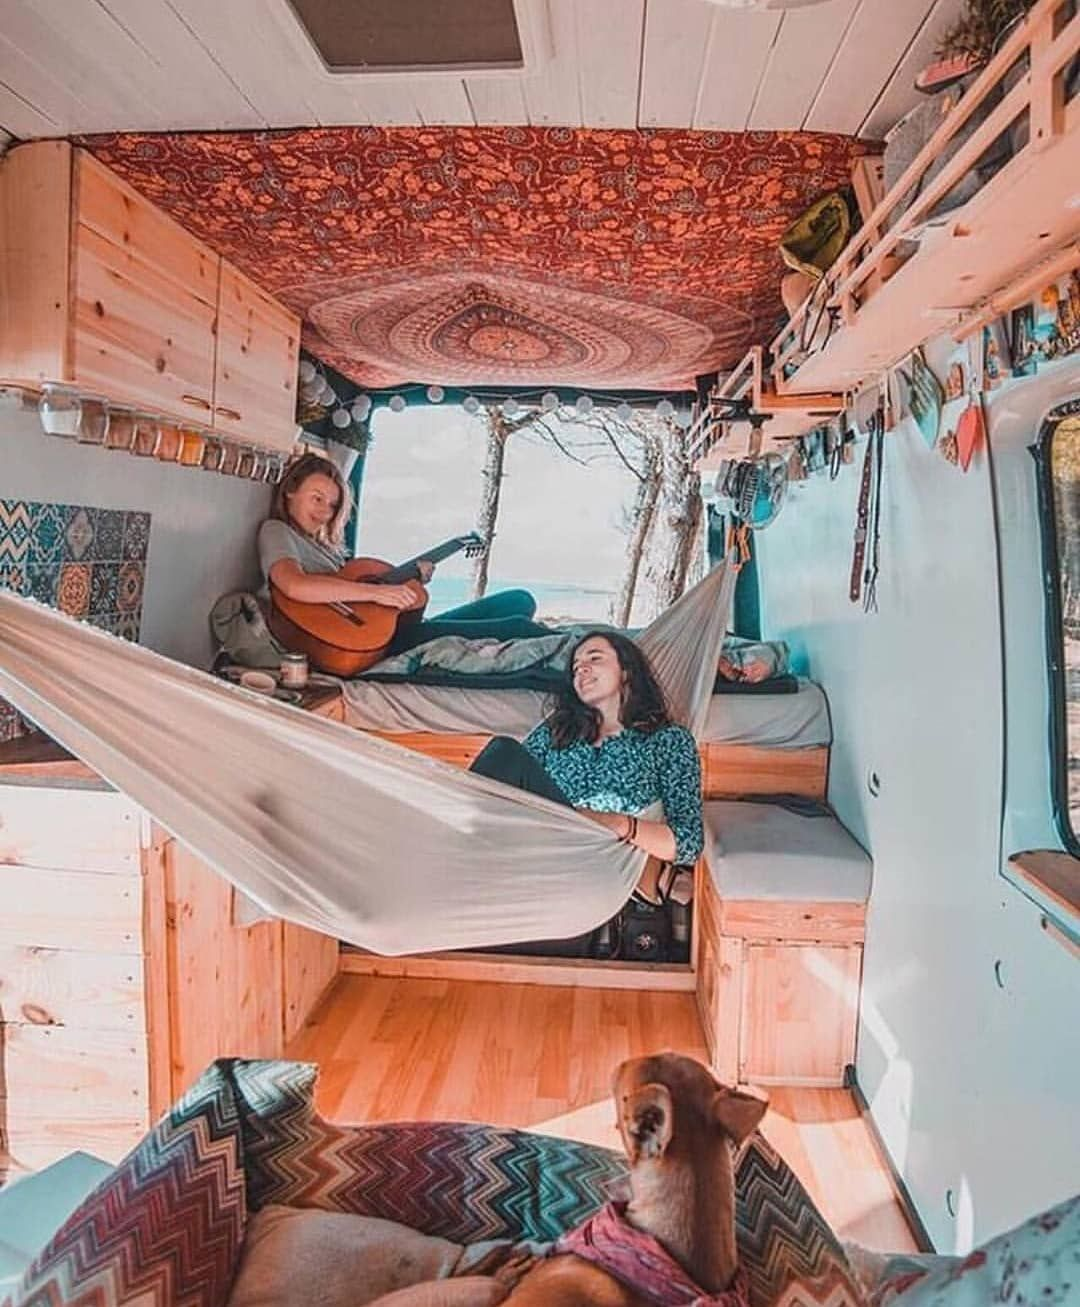 """we are love on Instagram: """"Double tap for #vanlife �� �@advanture_wives #freespirits #starchild #freespirits #freespirited #bliss #passion #goodvibes #goodfeeling"""""""